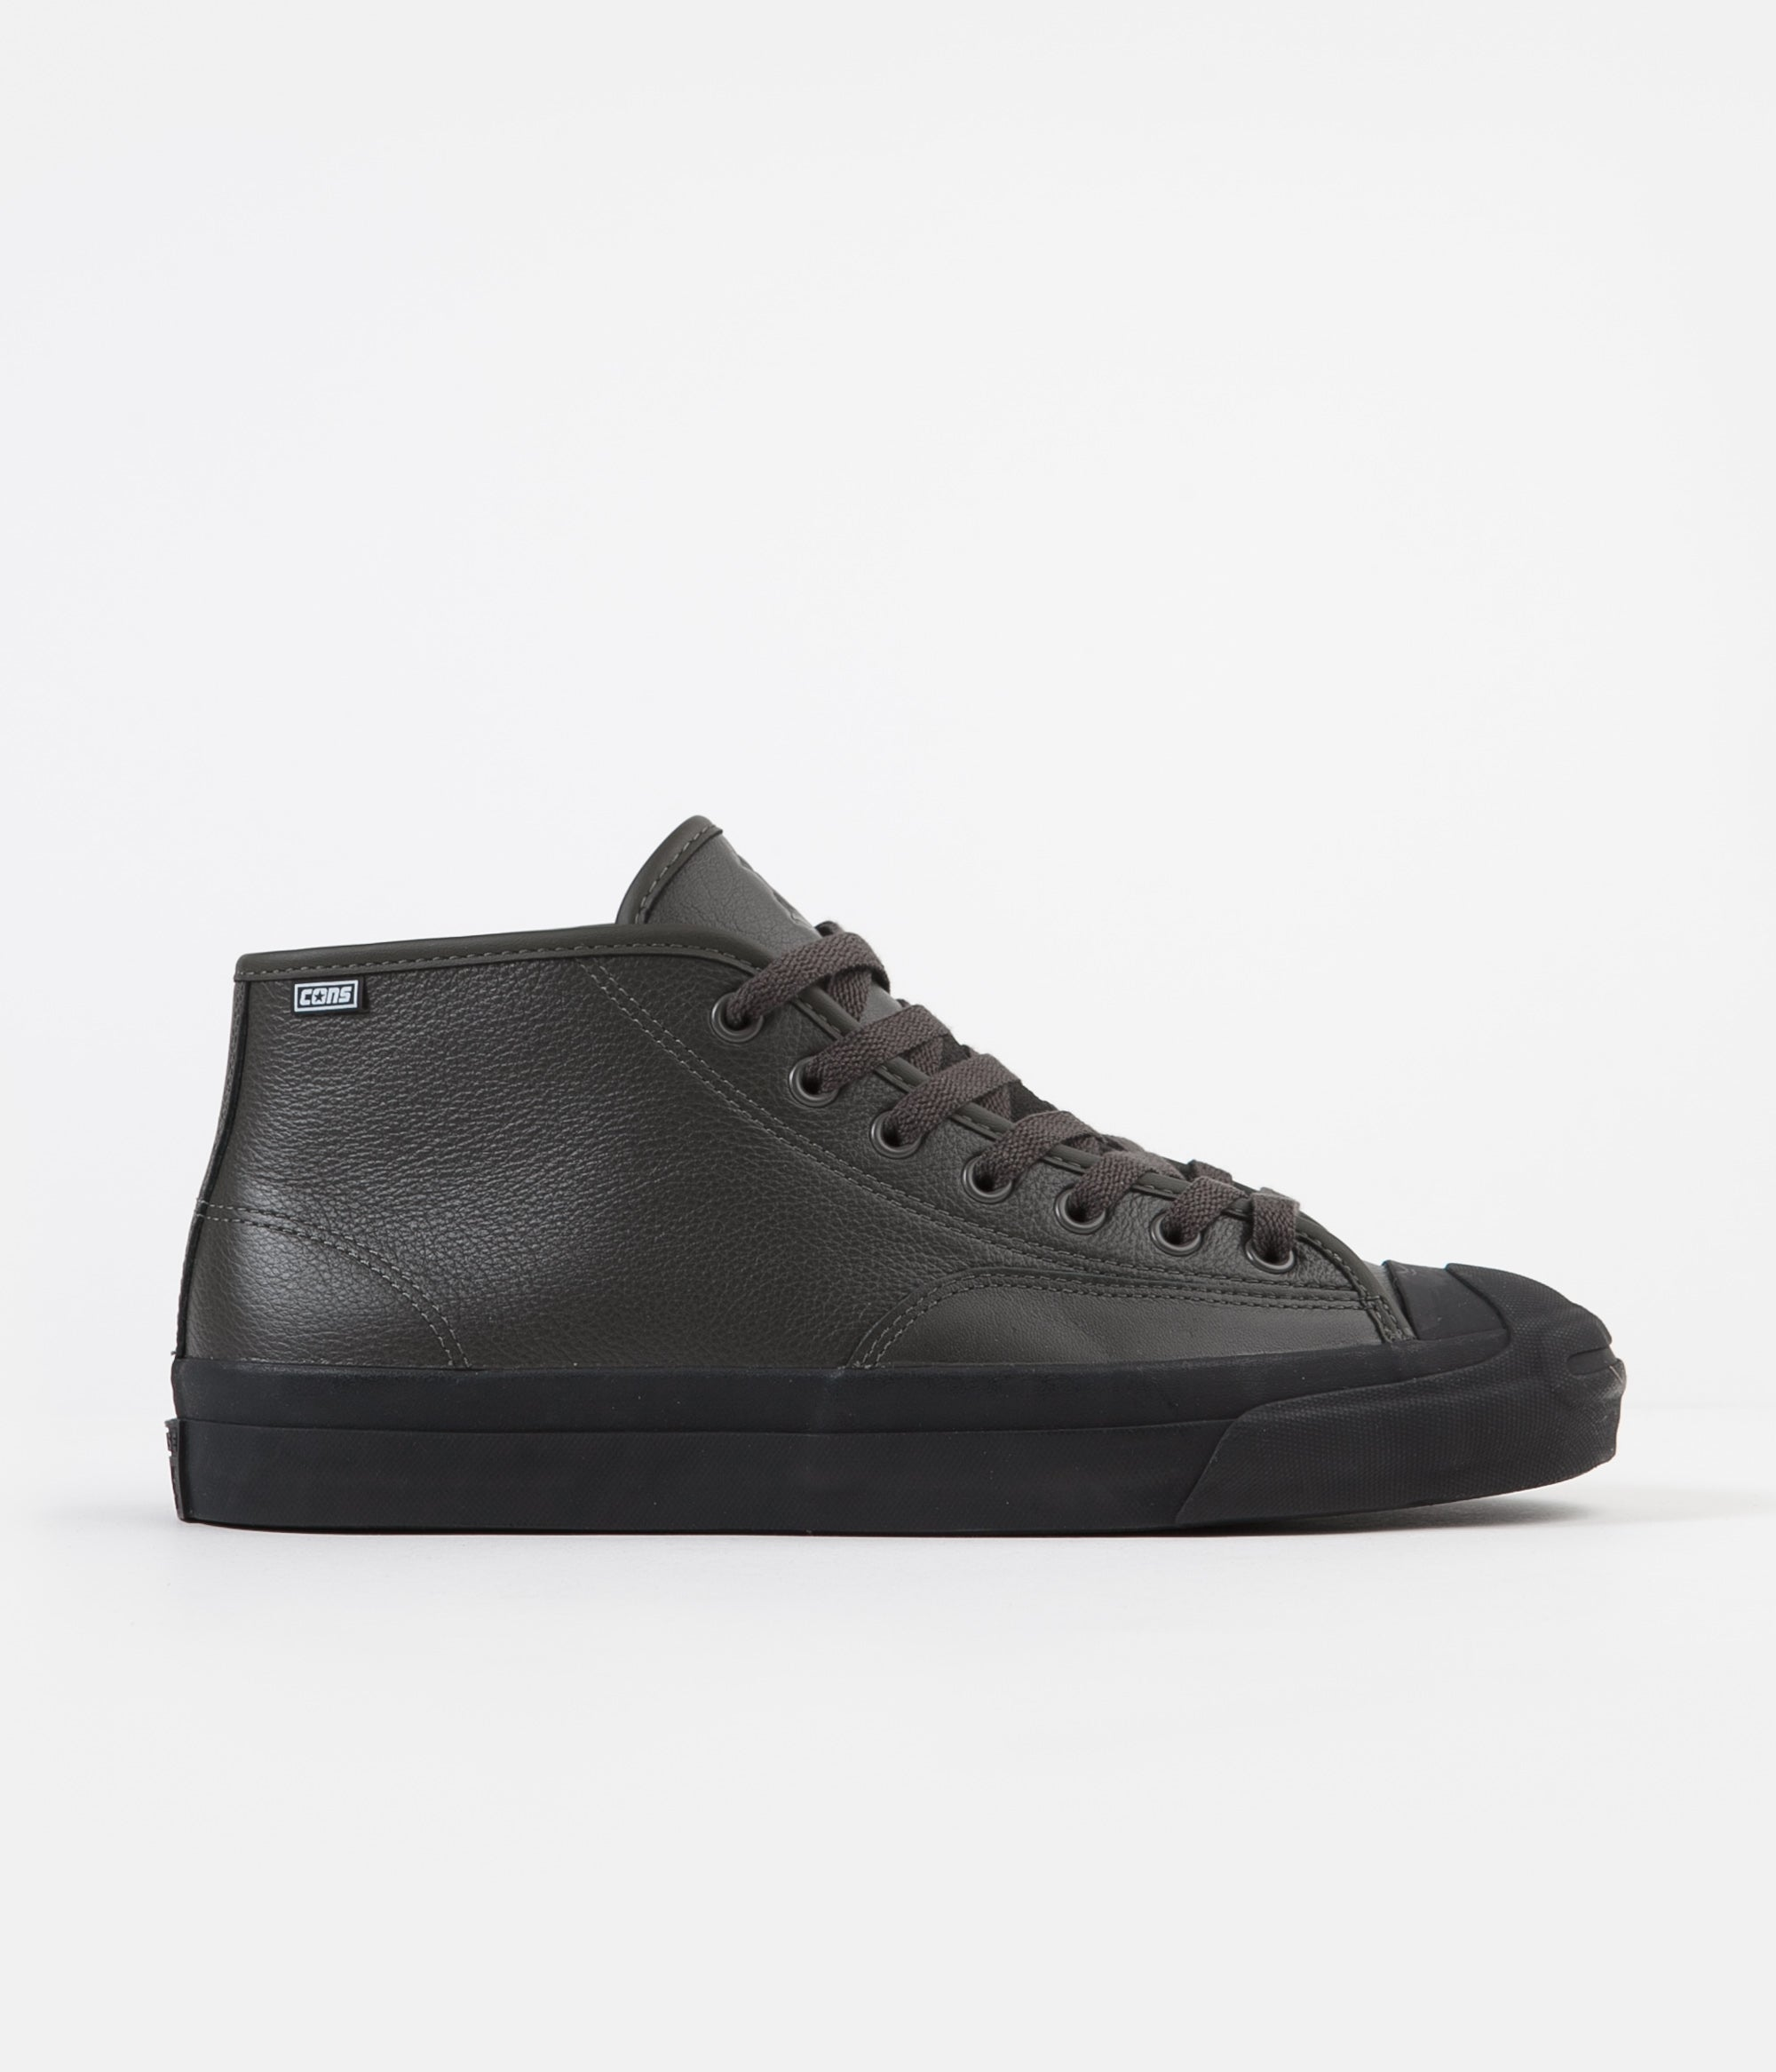 Converse Jack Purcell Pro Mid Leather Jake Johnson Shoes